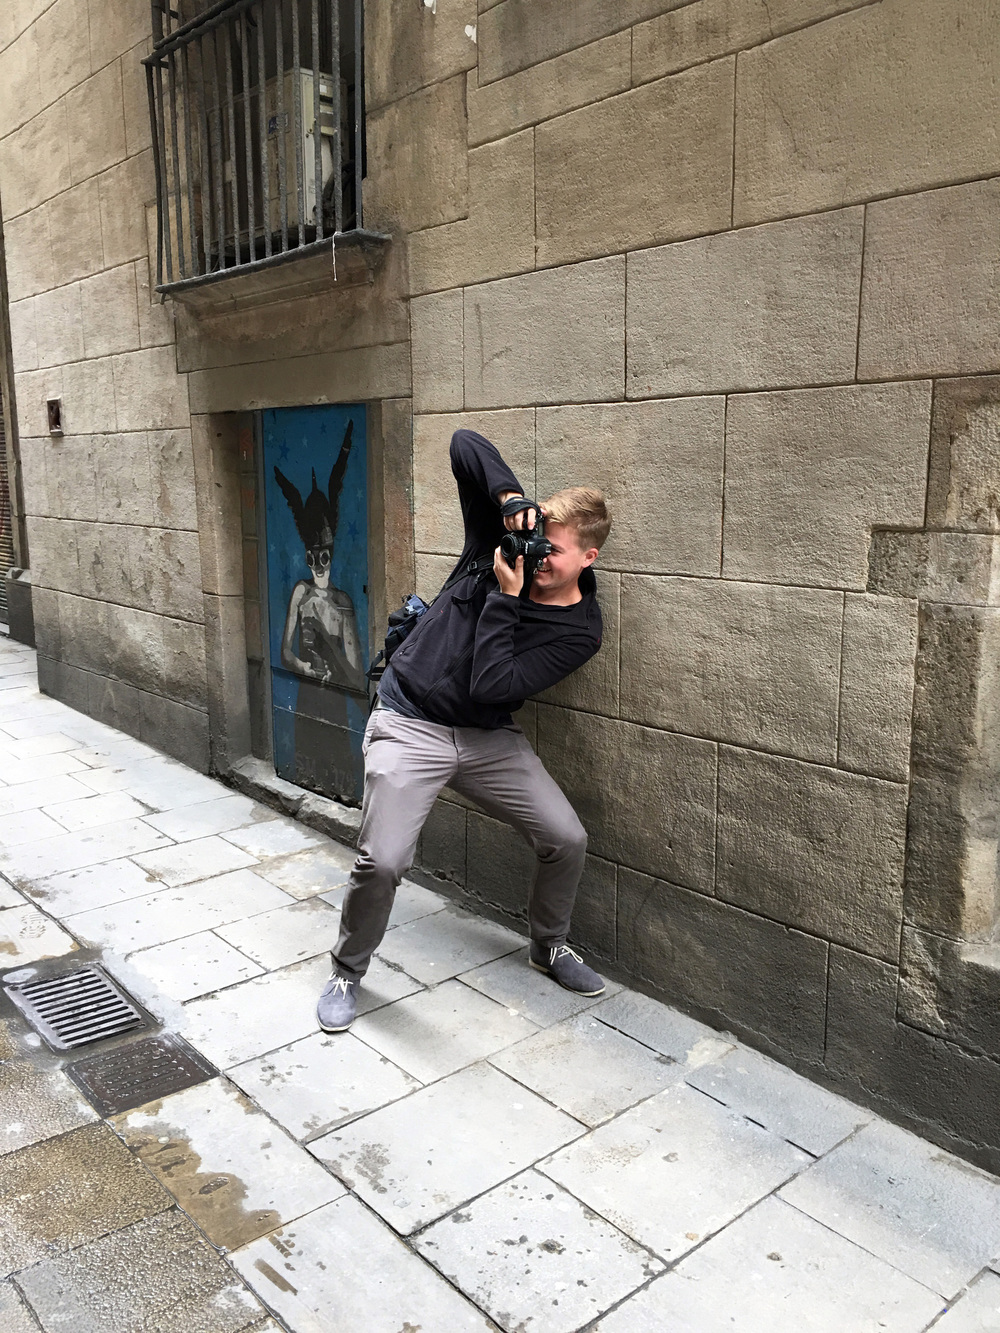 Francisco in shooting mode in the Gothic Quarter. Captured by Michelle